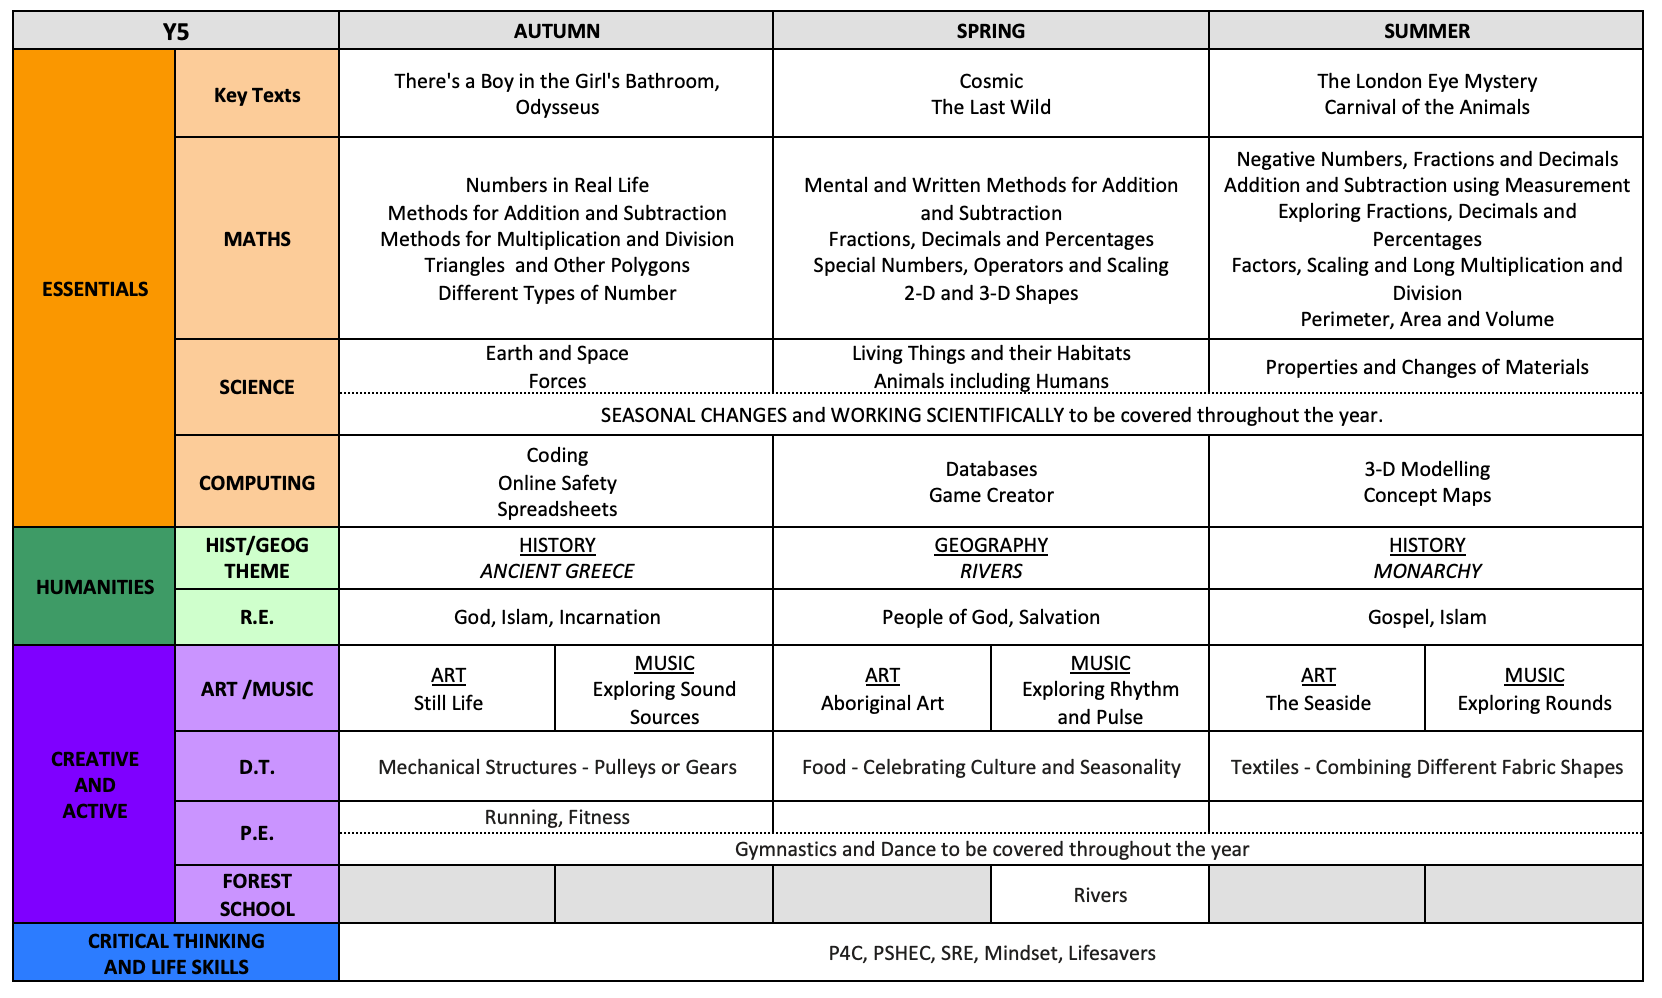 Y5 Curriculum Overview